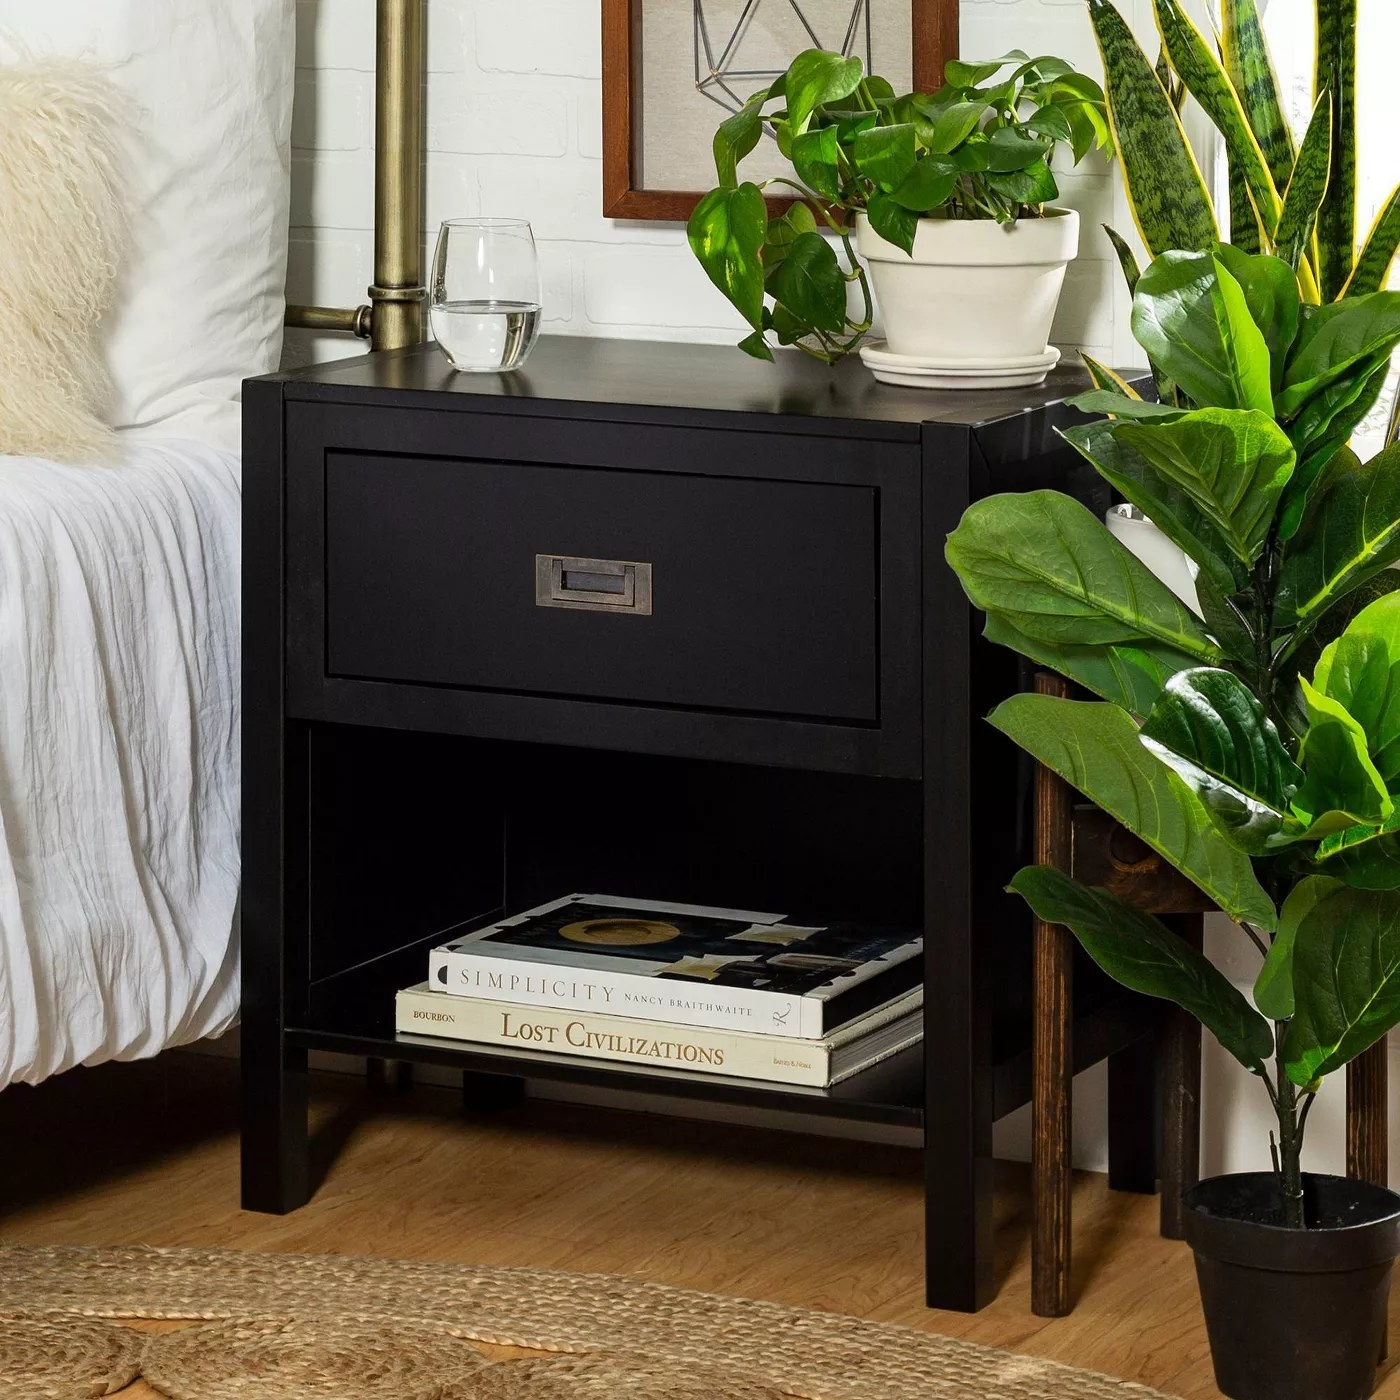 The nightstand in black with one drawer and one open shelf